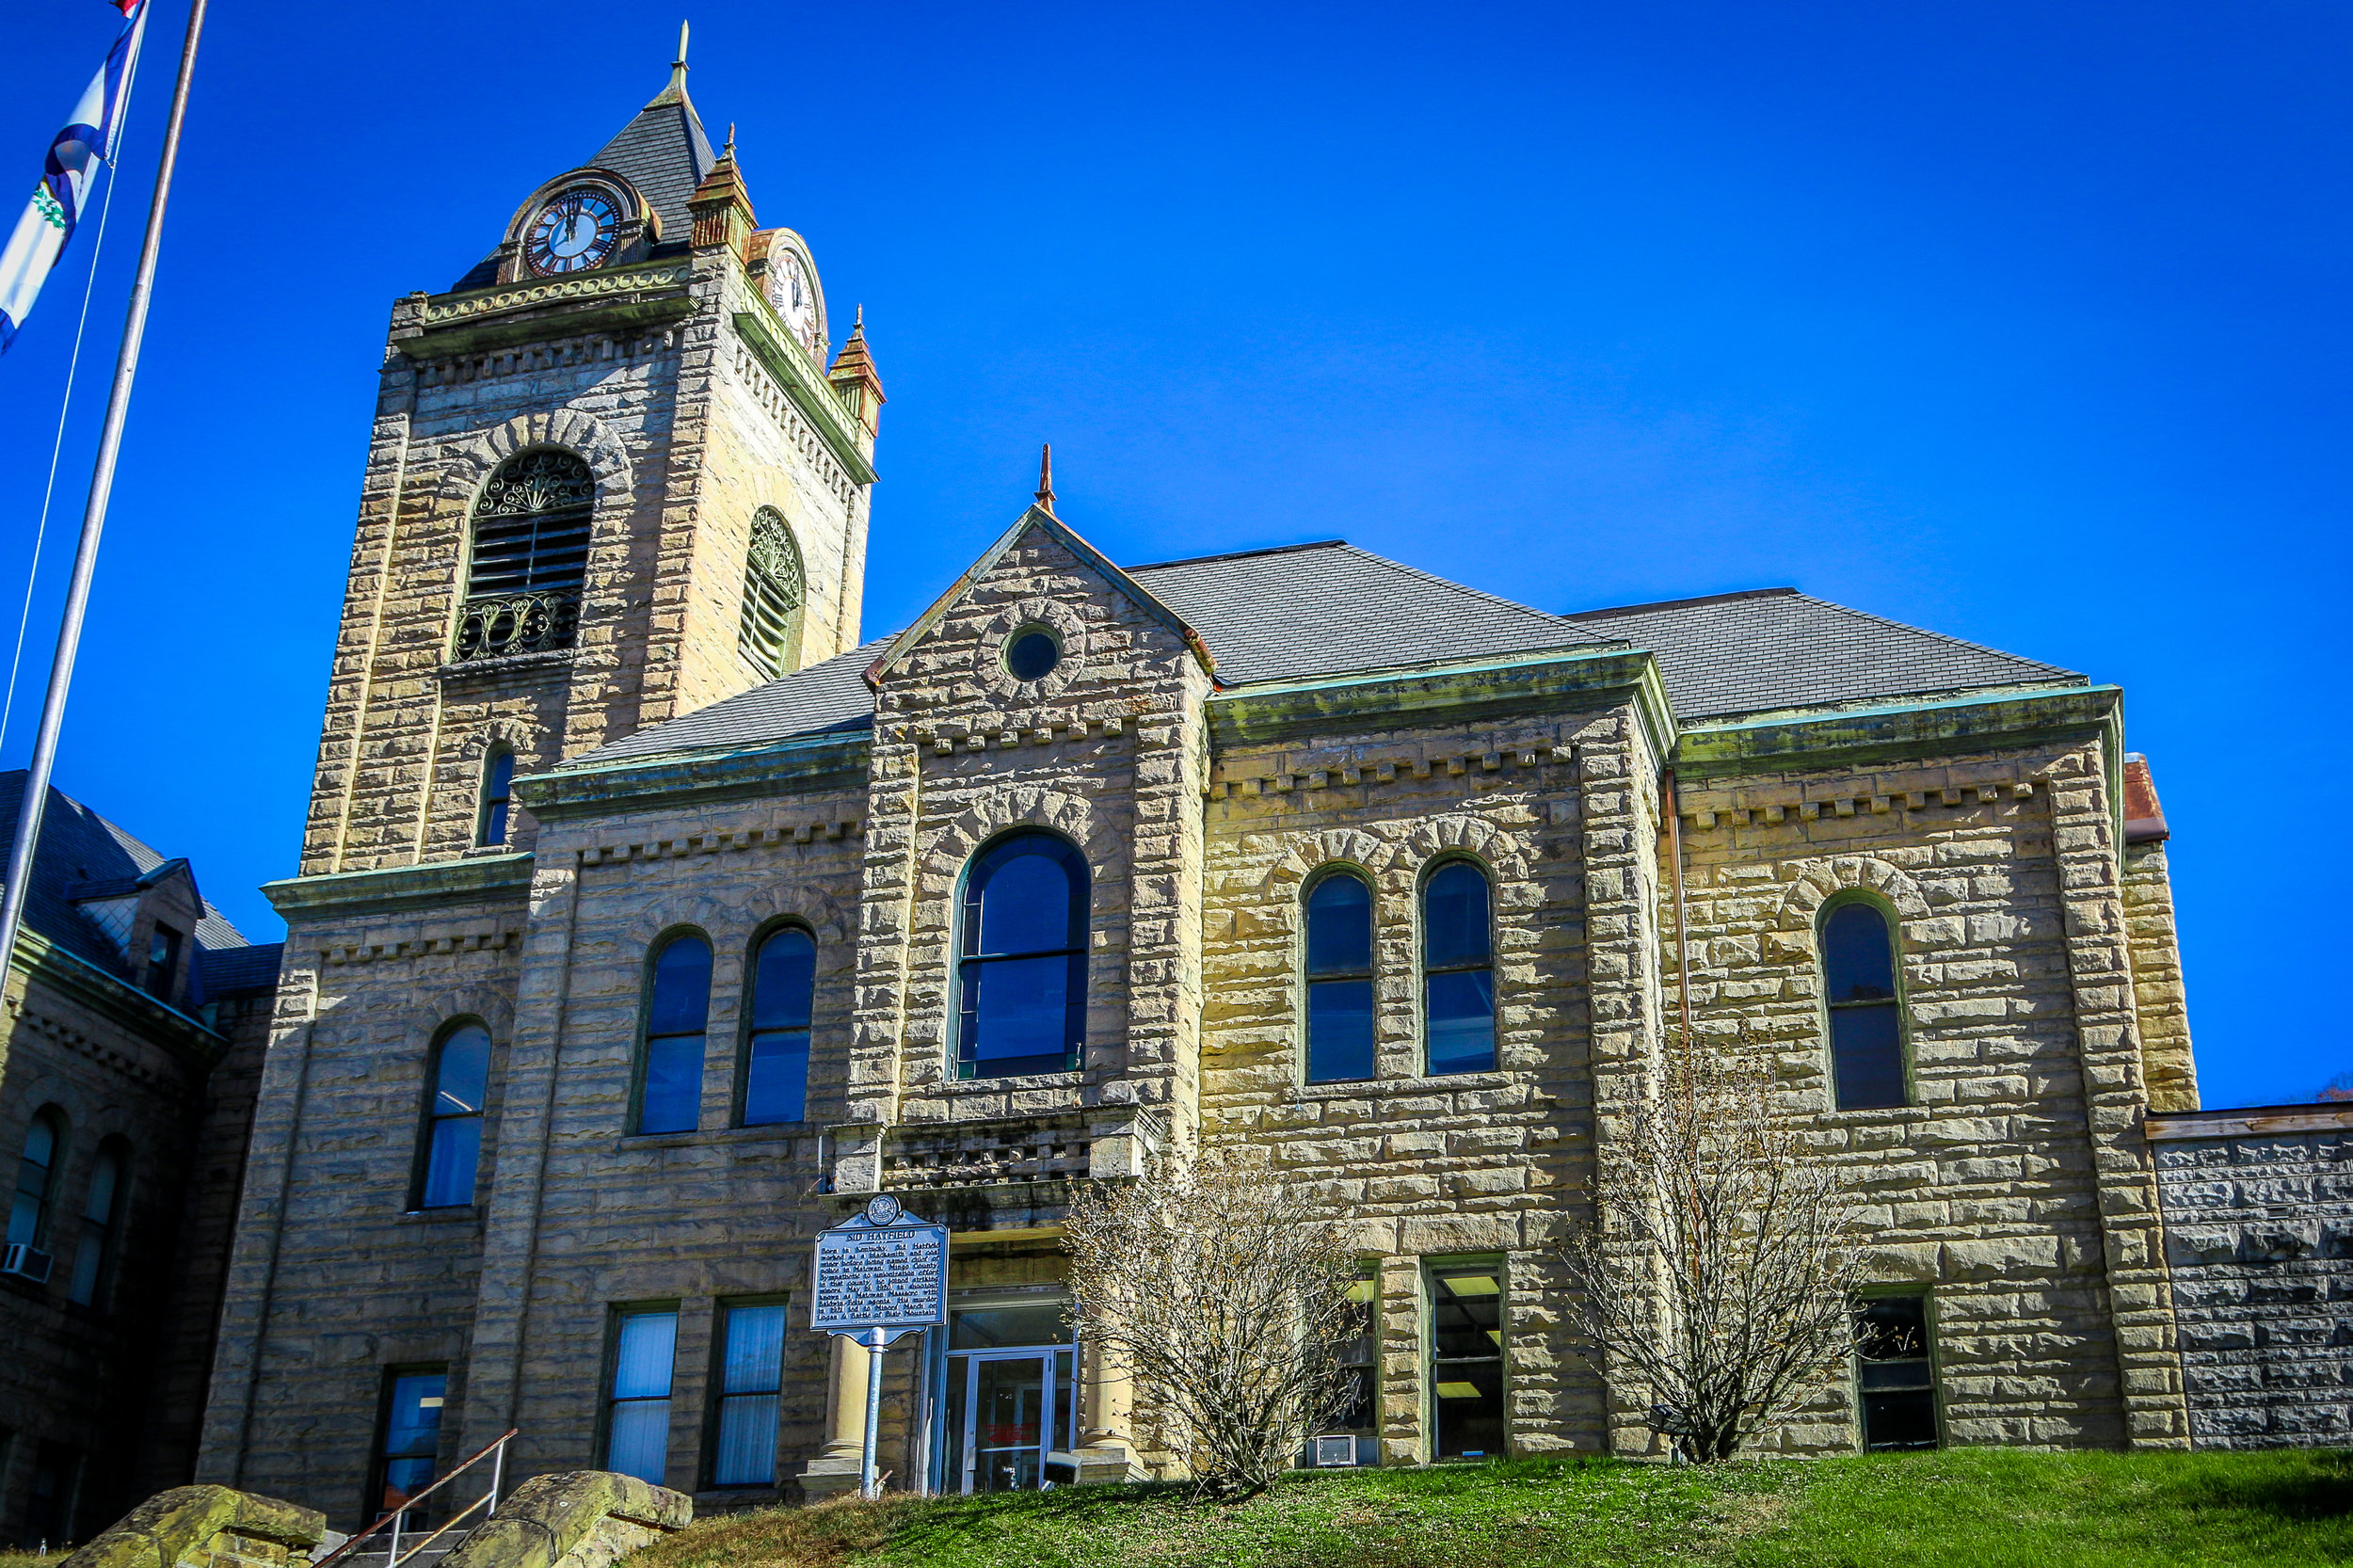 McDowell County Courthouse, Welch, WV